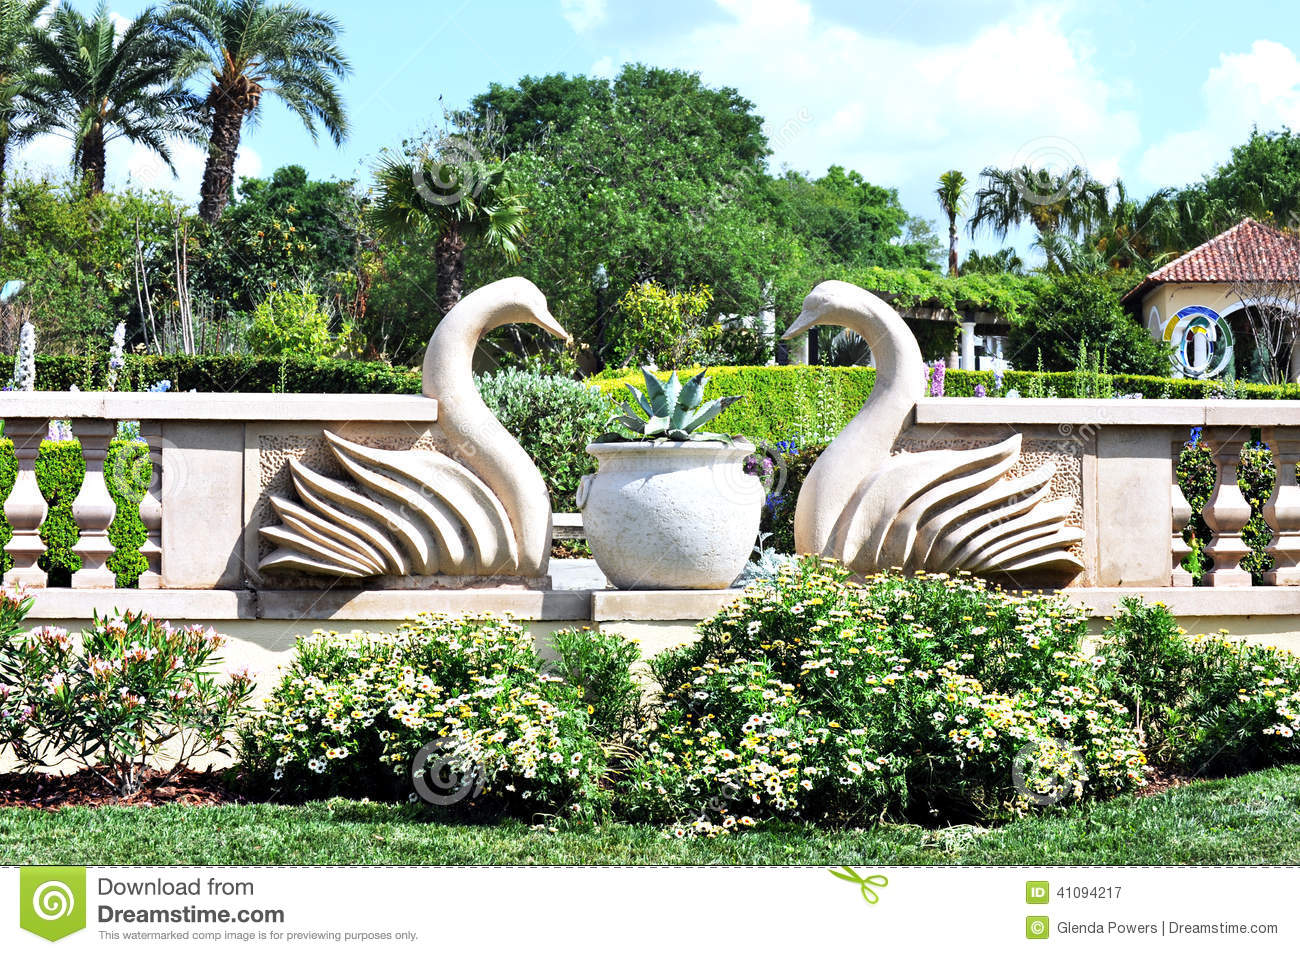 Swans Statues In A Tropical Garden